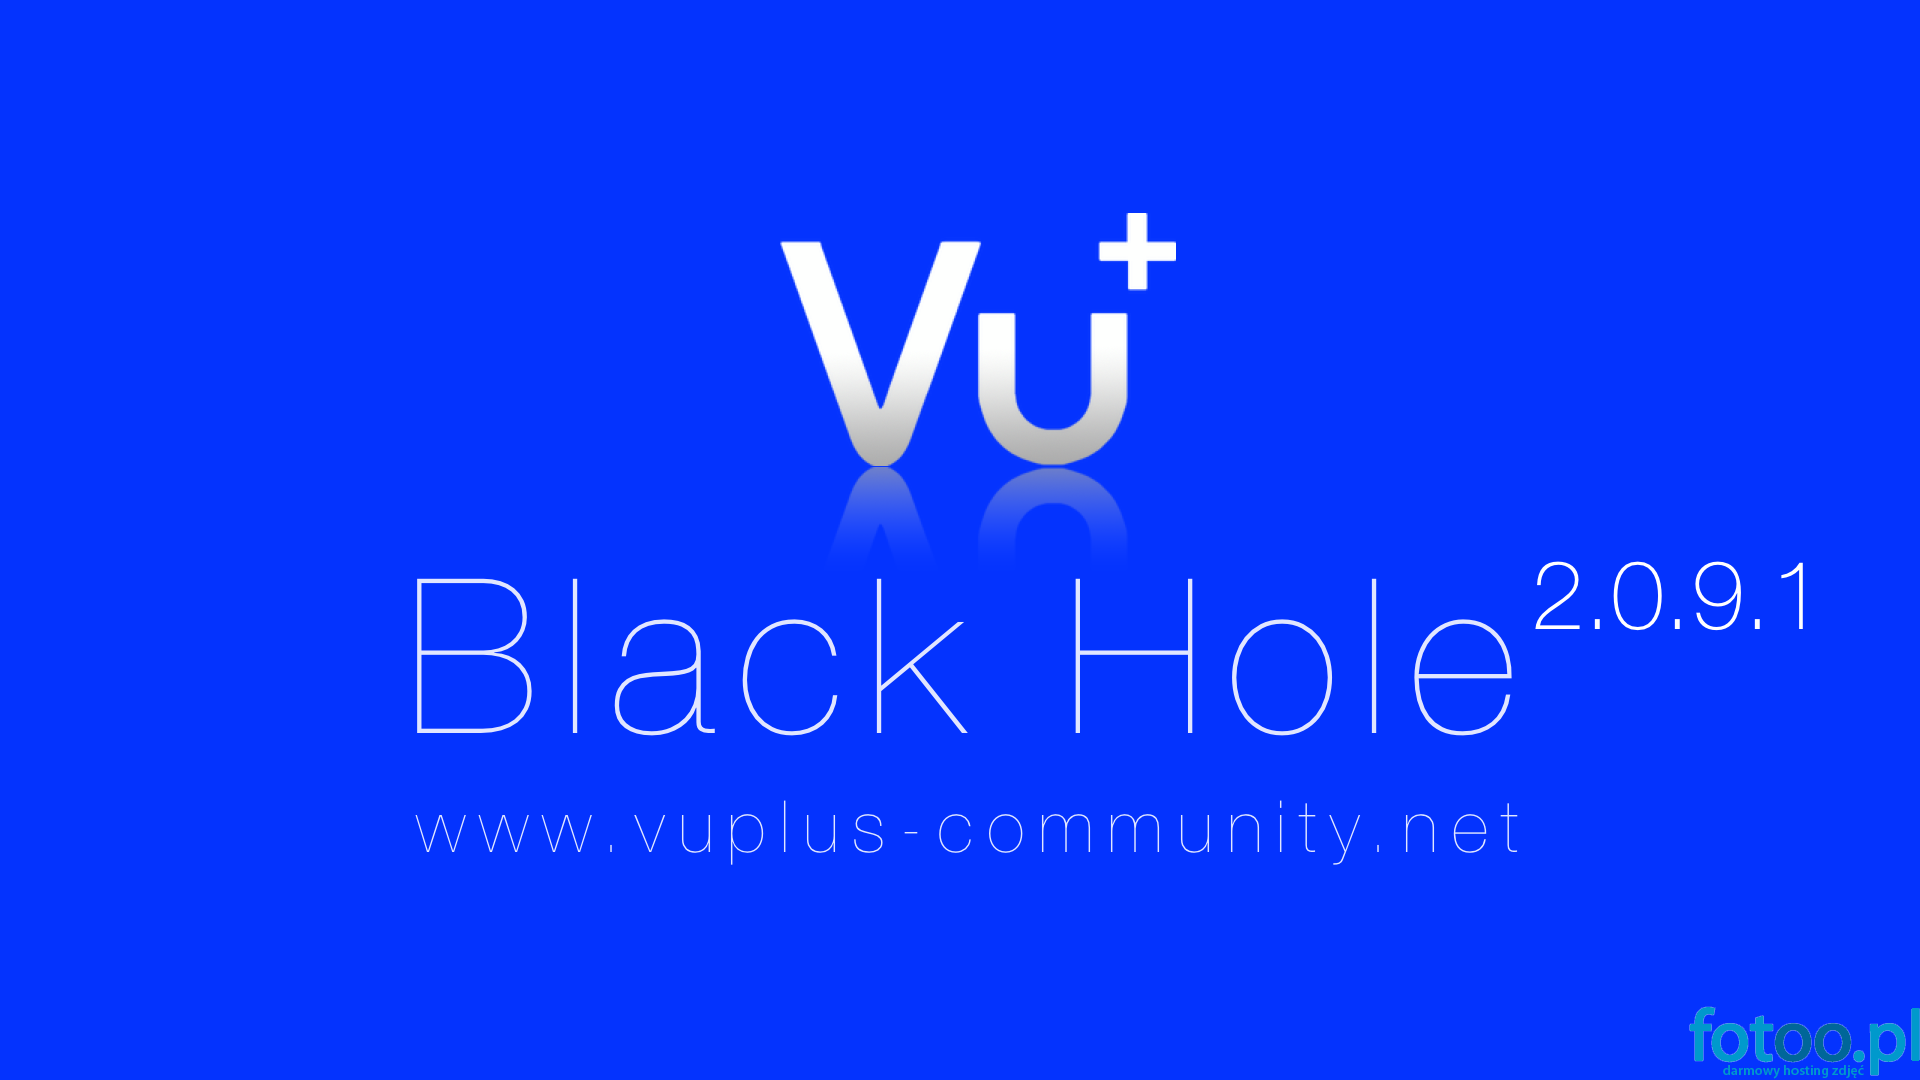 Download Black Hole 2.0.9.1 for VU+Duo